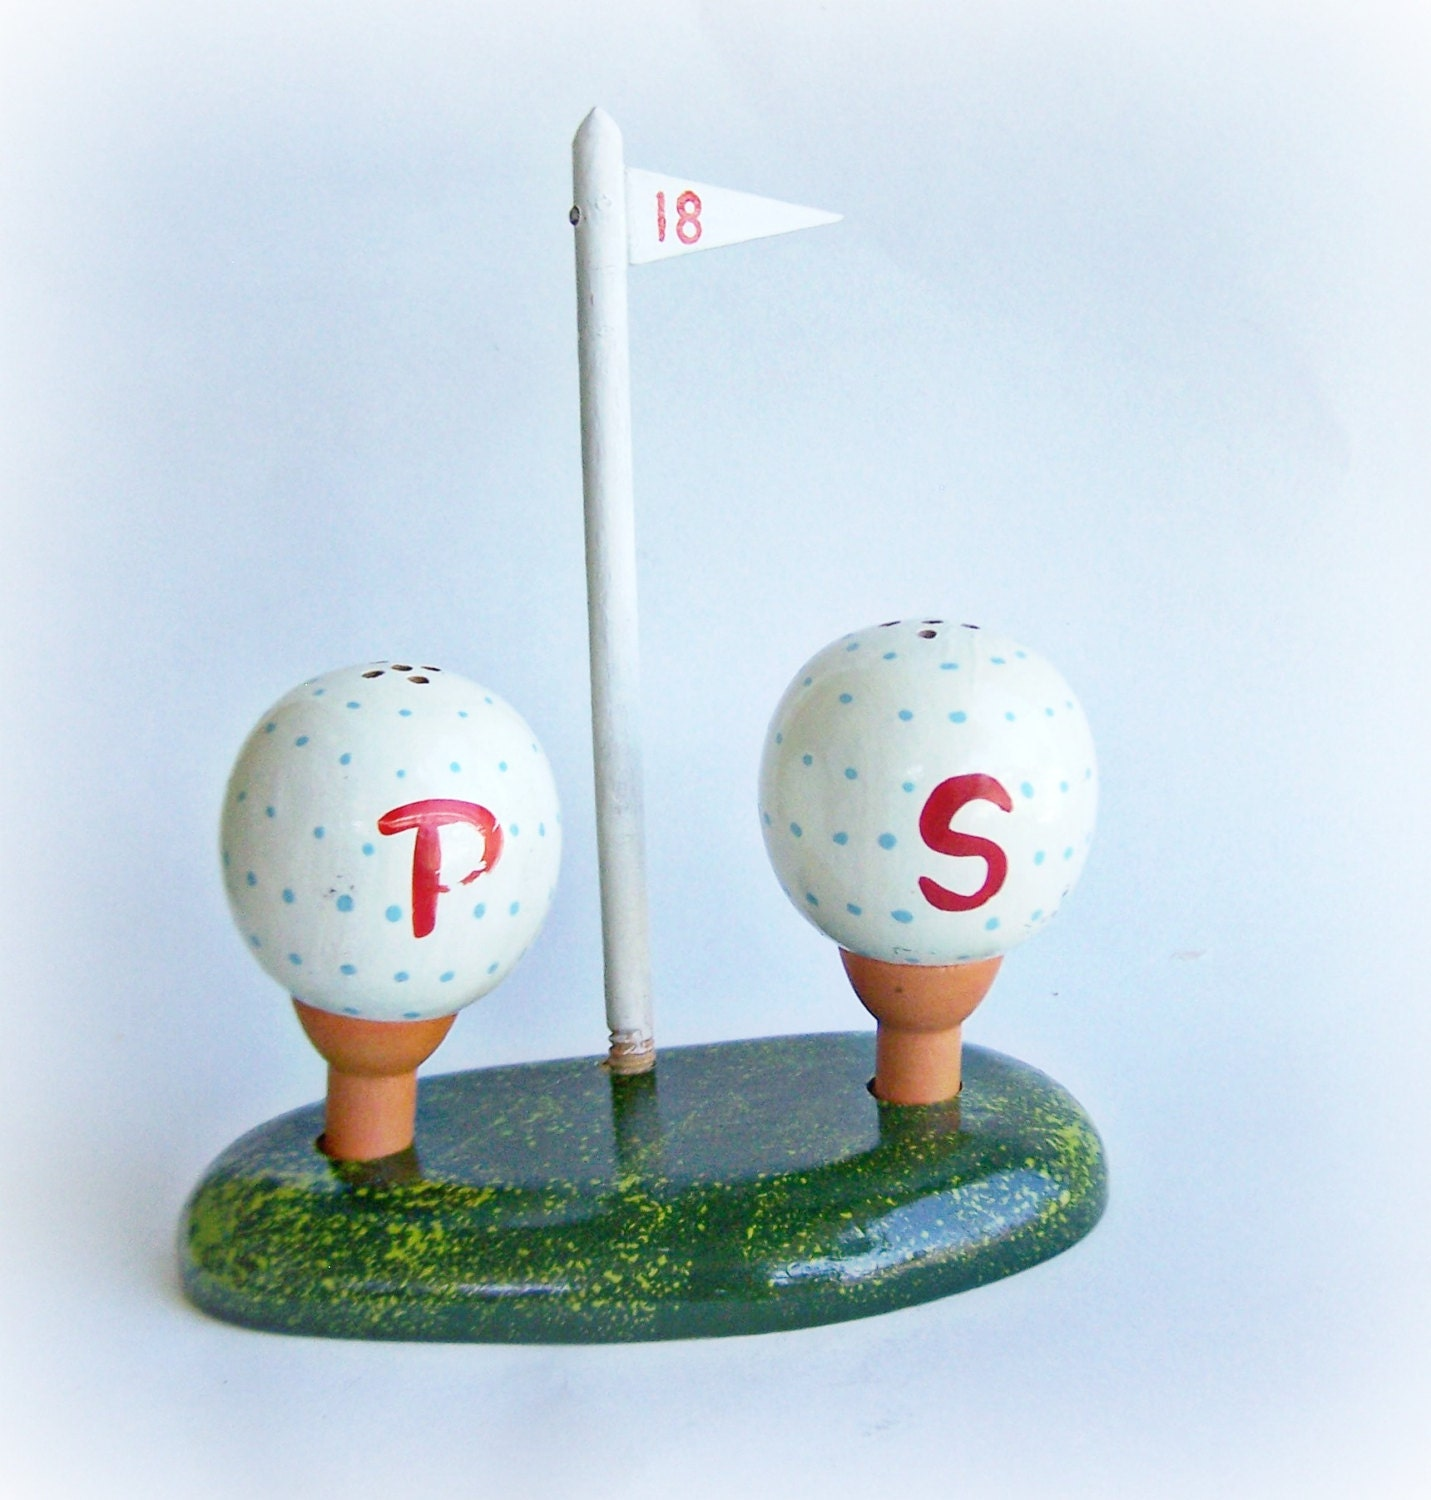 Vintage Salt And Pepper Shaker Novelty 18th Hole Golf Ball